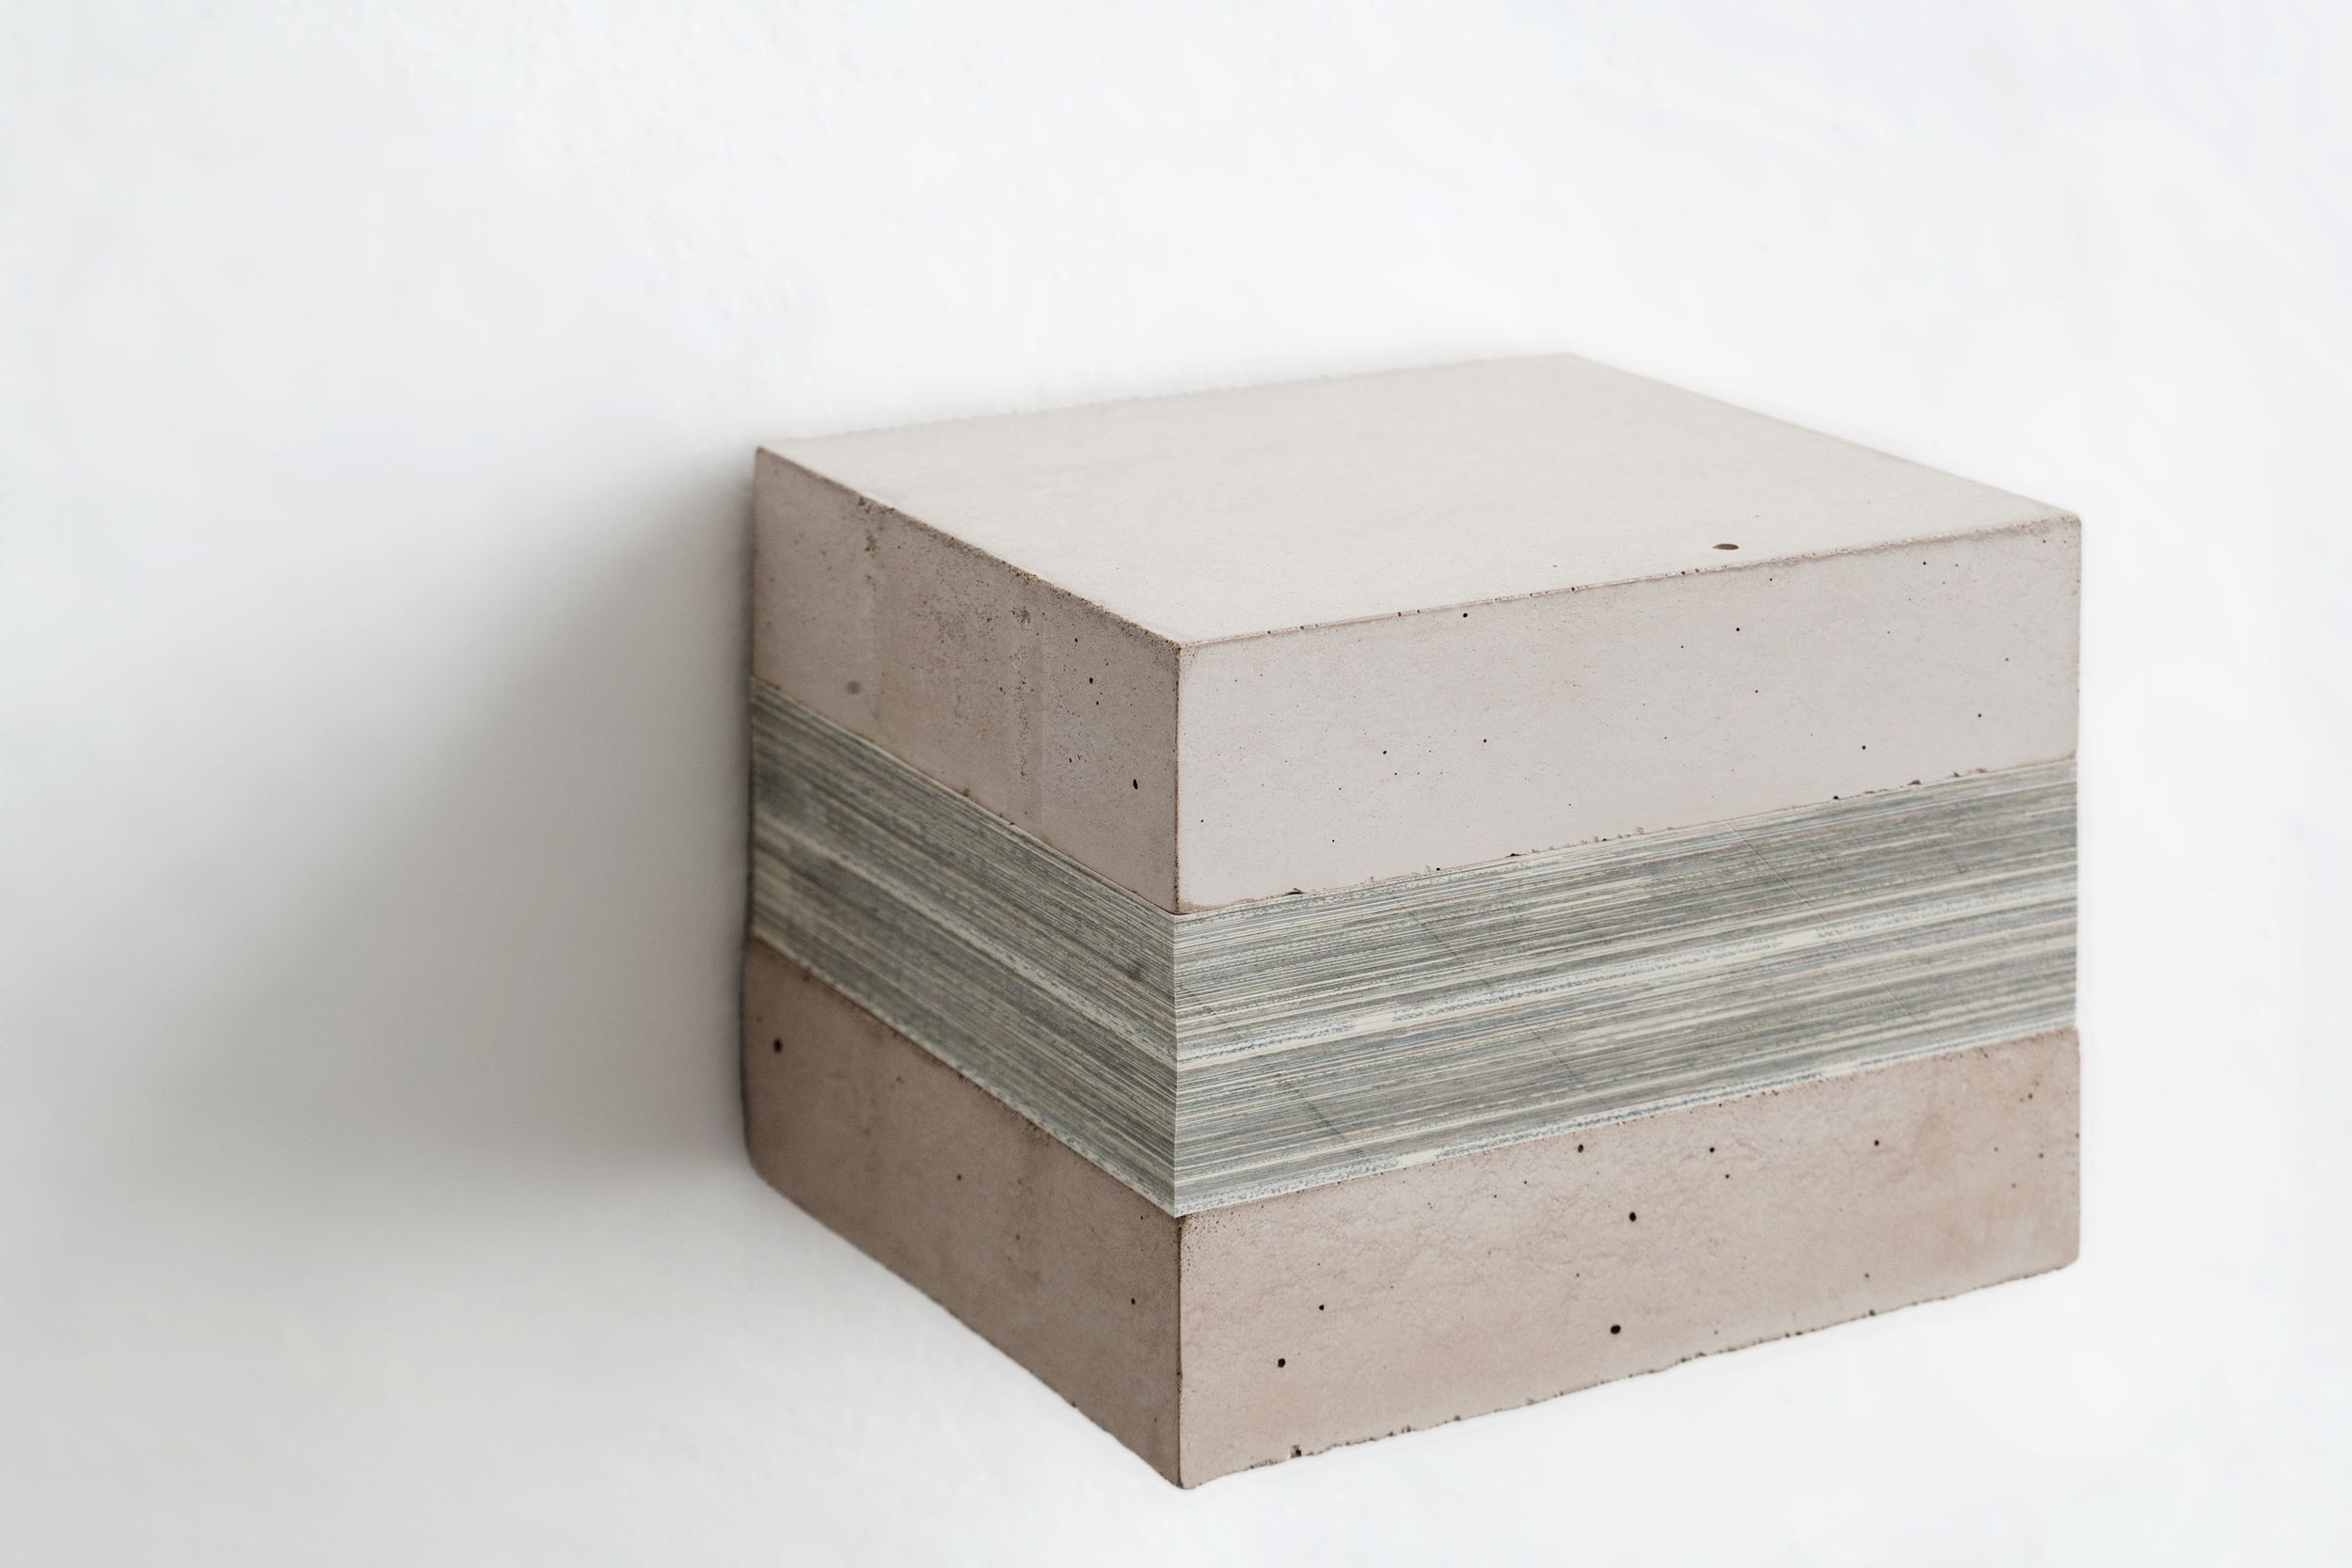 Fernanda Fragateiro  Concrete Words #1,  2015 stainless steel support, pigmented concrete blocks, block of book sections, 16 x 14.3 x 12.3